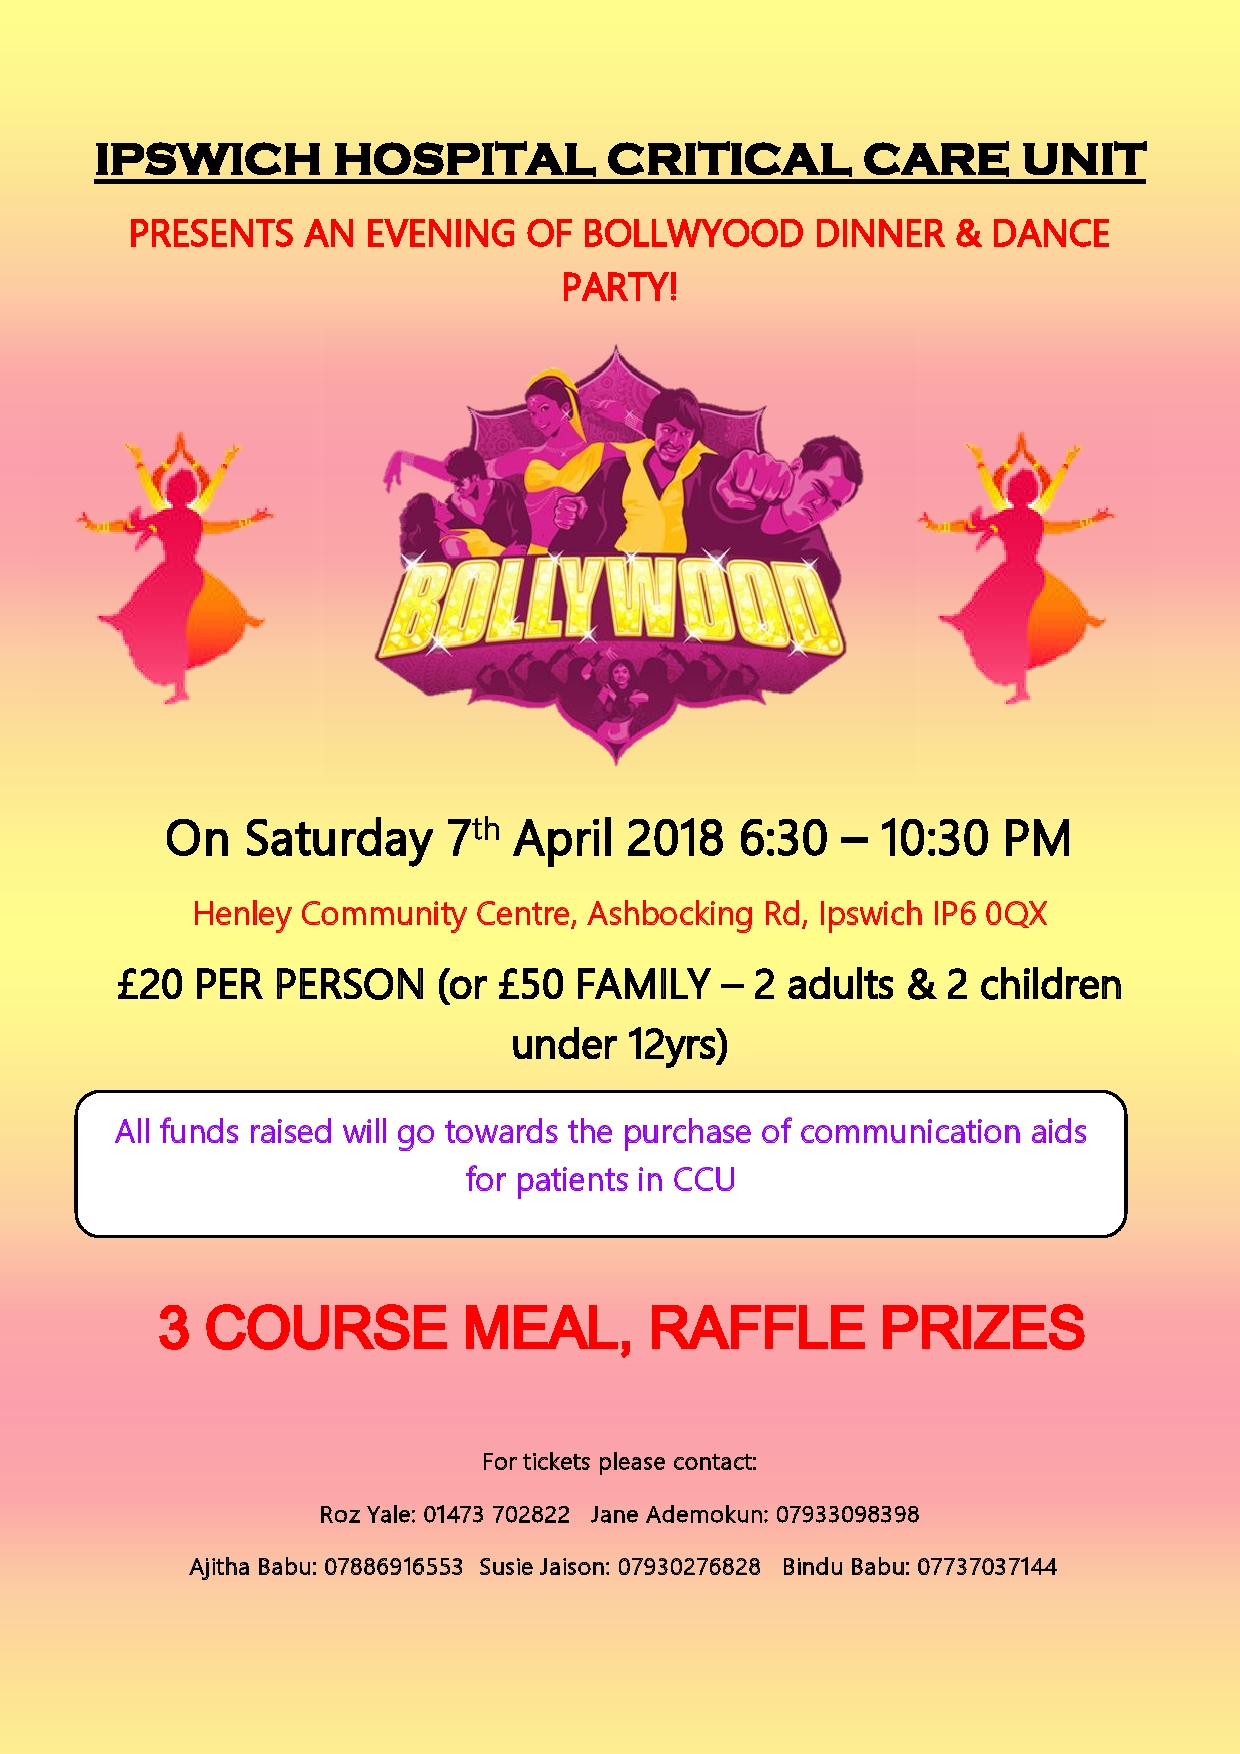 Bollywood Dinner and Dance